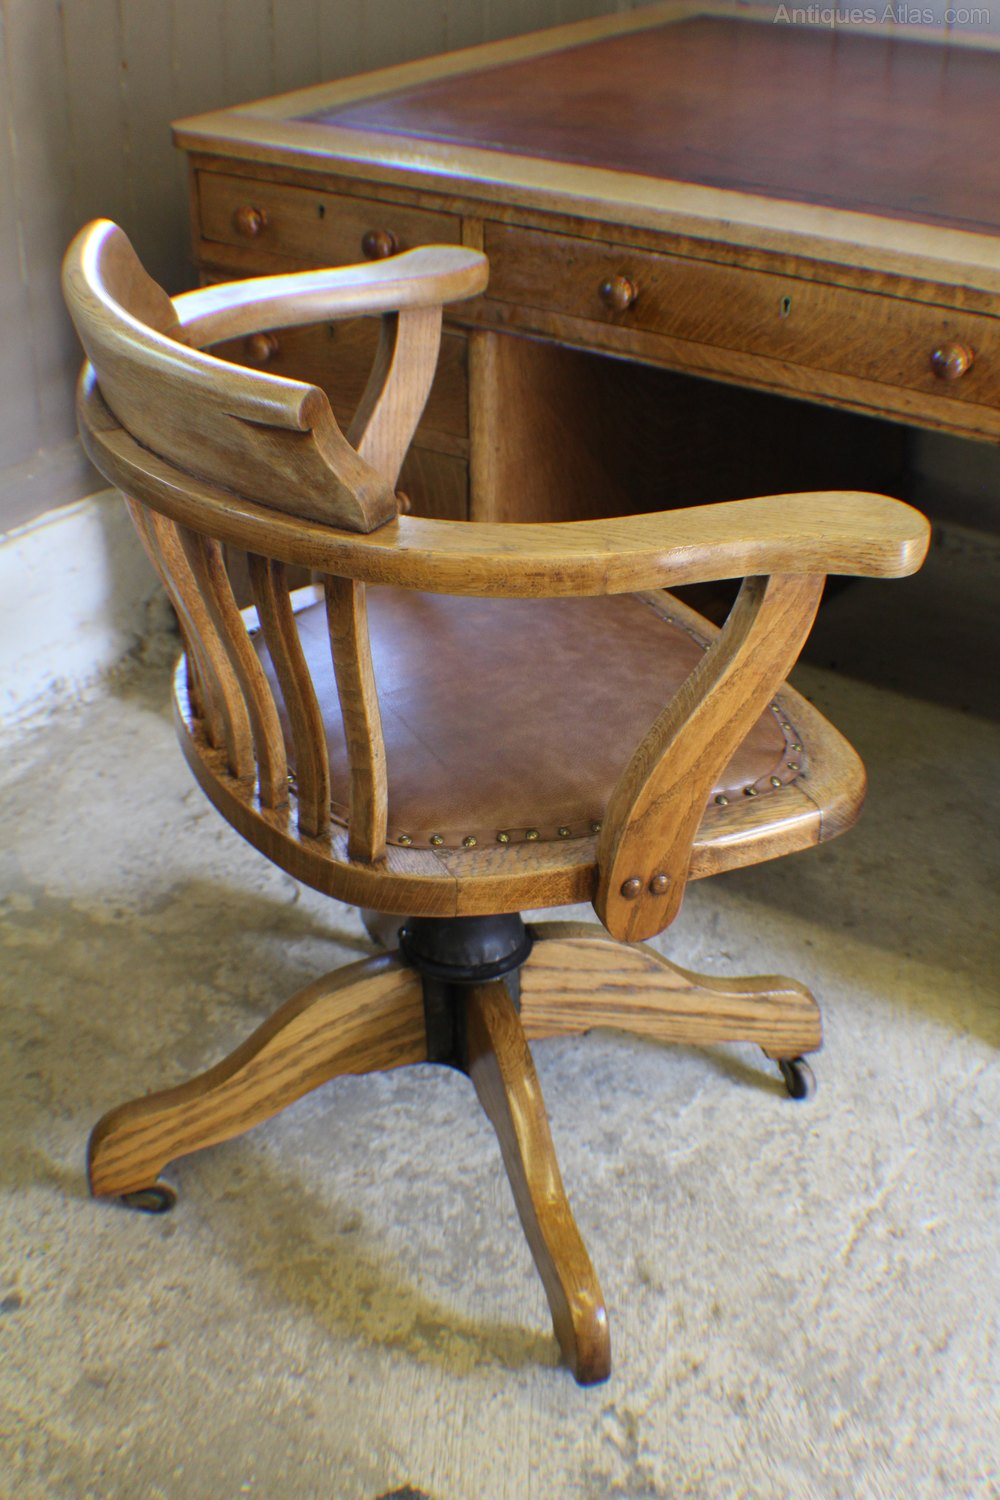 Superb Antique Swivel And Revolving Chairs Office DeskVintage Oak 1930s Adjustable Desk  Office Chair Antiques Atlas